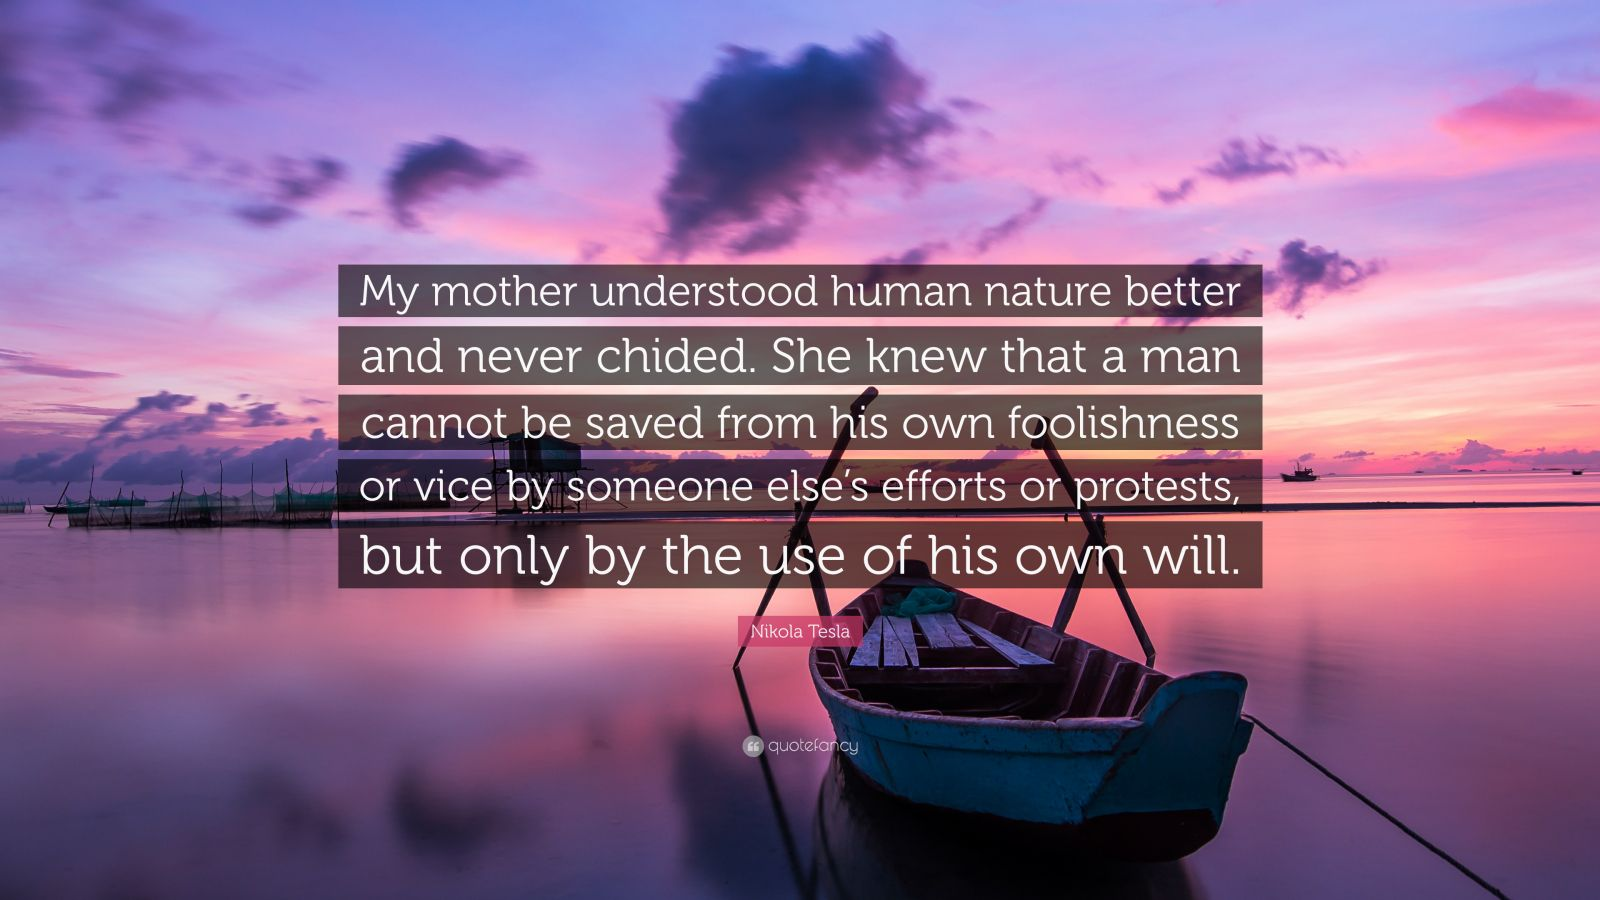 """Nikola Tesla Quote: """"My mother understood human nature better and never chided. She knew that a man cannot be saved from his own foolishness or vice by someone else's efforts or protests, but only by the use of his own will."""""""